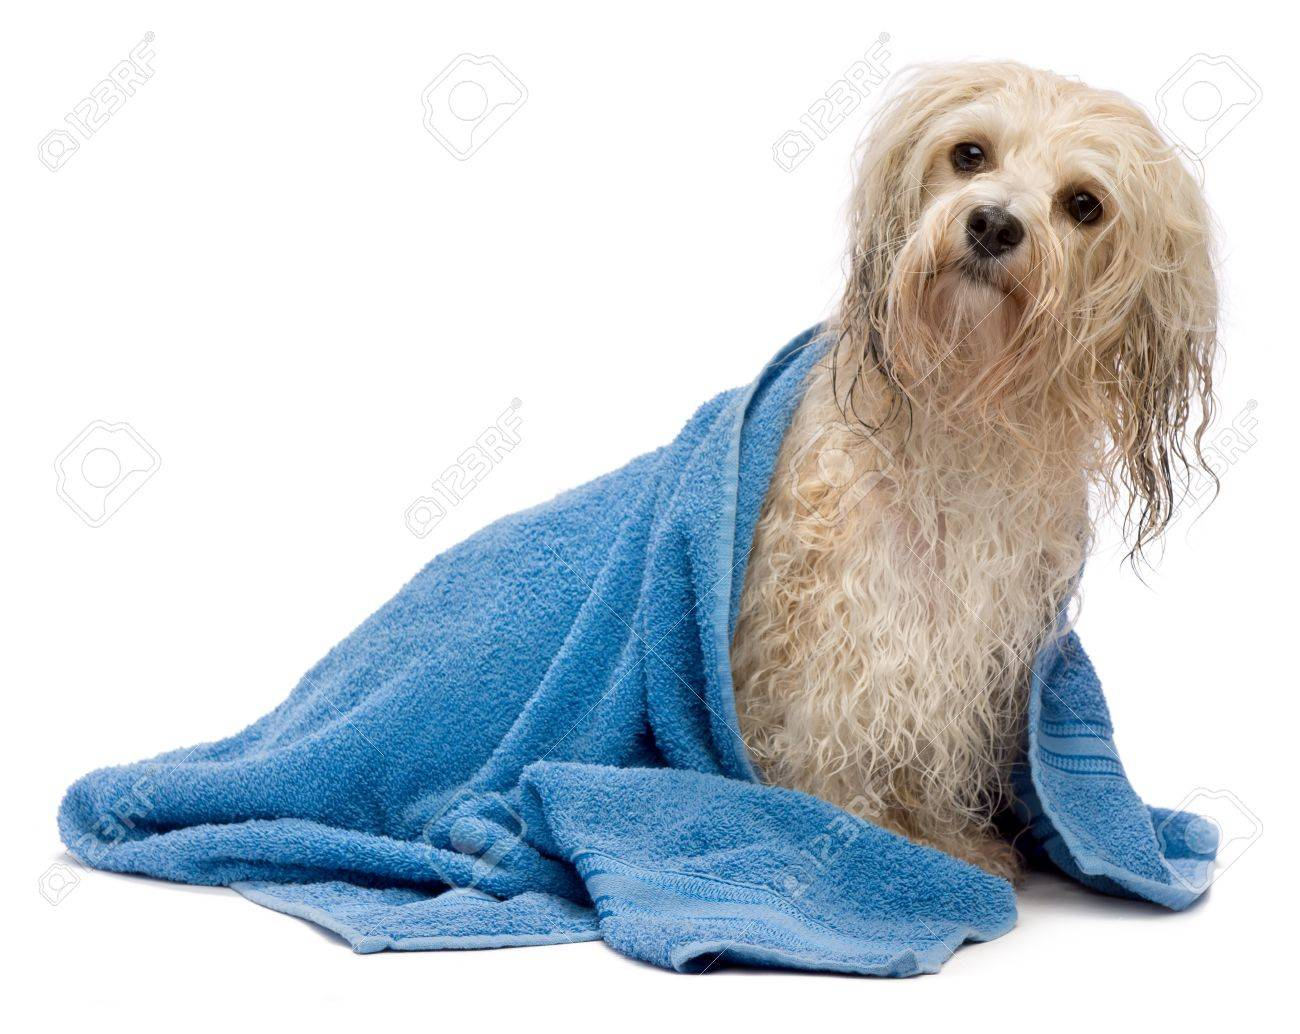 A wet cream havanese dog after the bath with a blue towel isolated on white background Stock Photo - 15279654